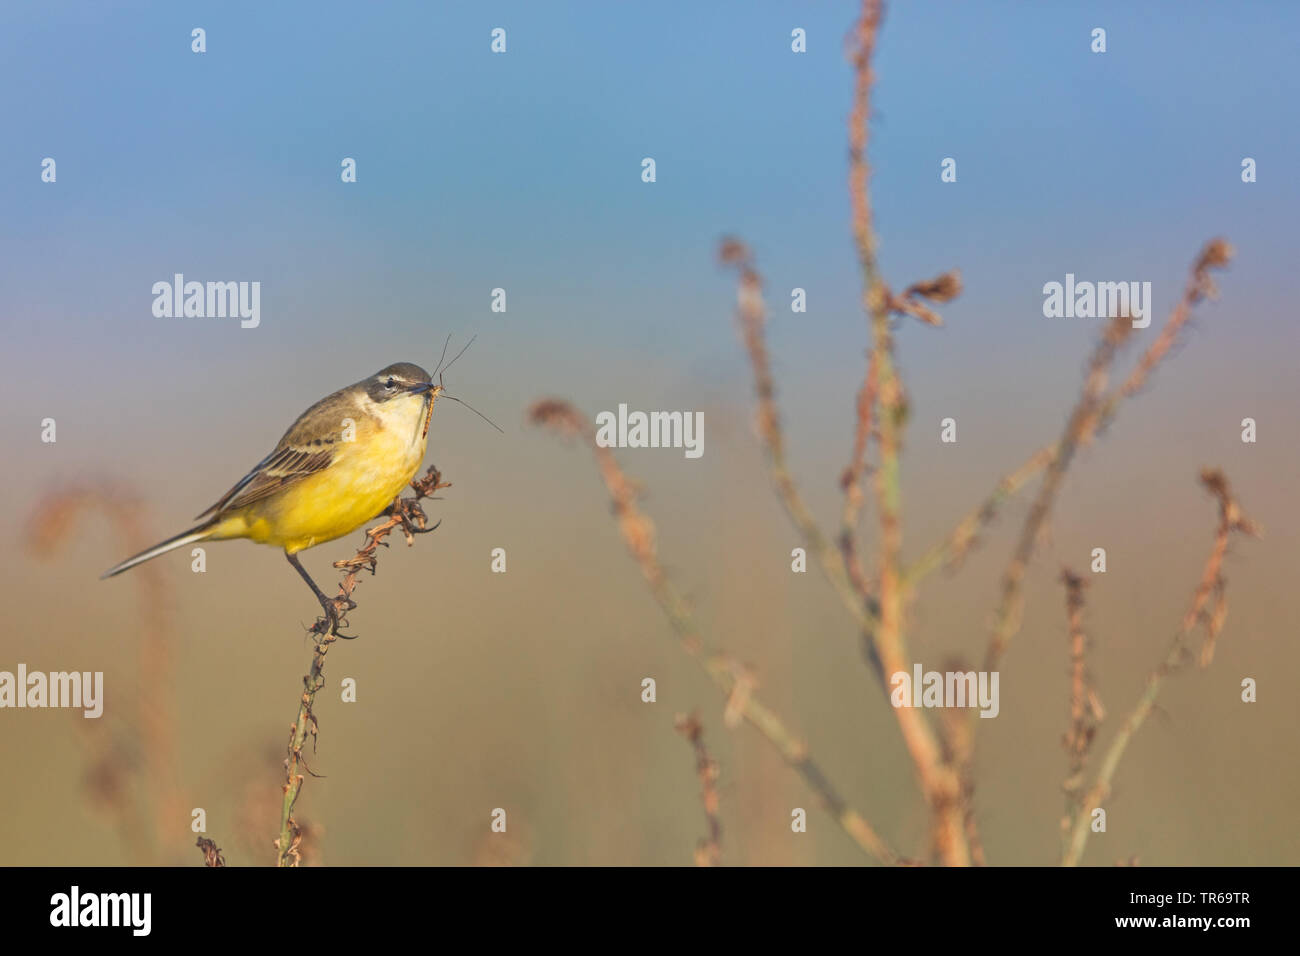 Blue-headed Wagtail, Yellow Wagtail (Motacilla flava flava), sitting on a plant with prey in the beak, Greece, Lesbos - Stock Image